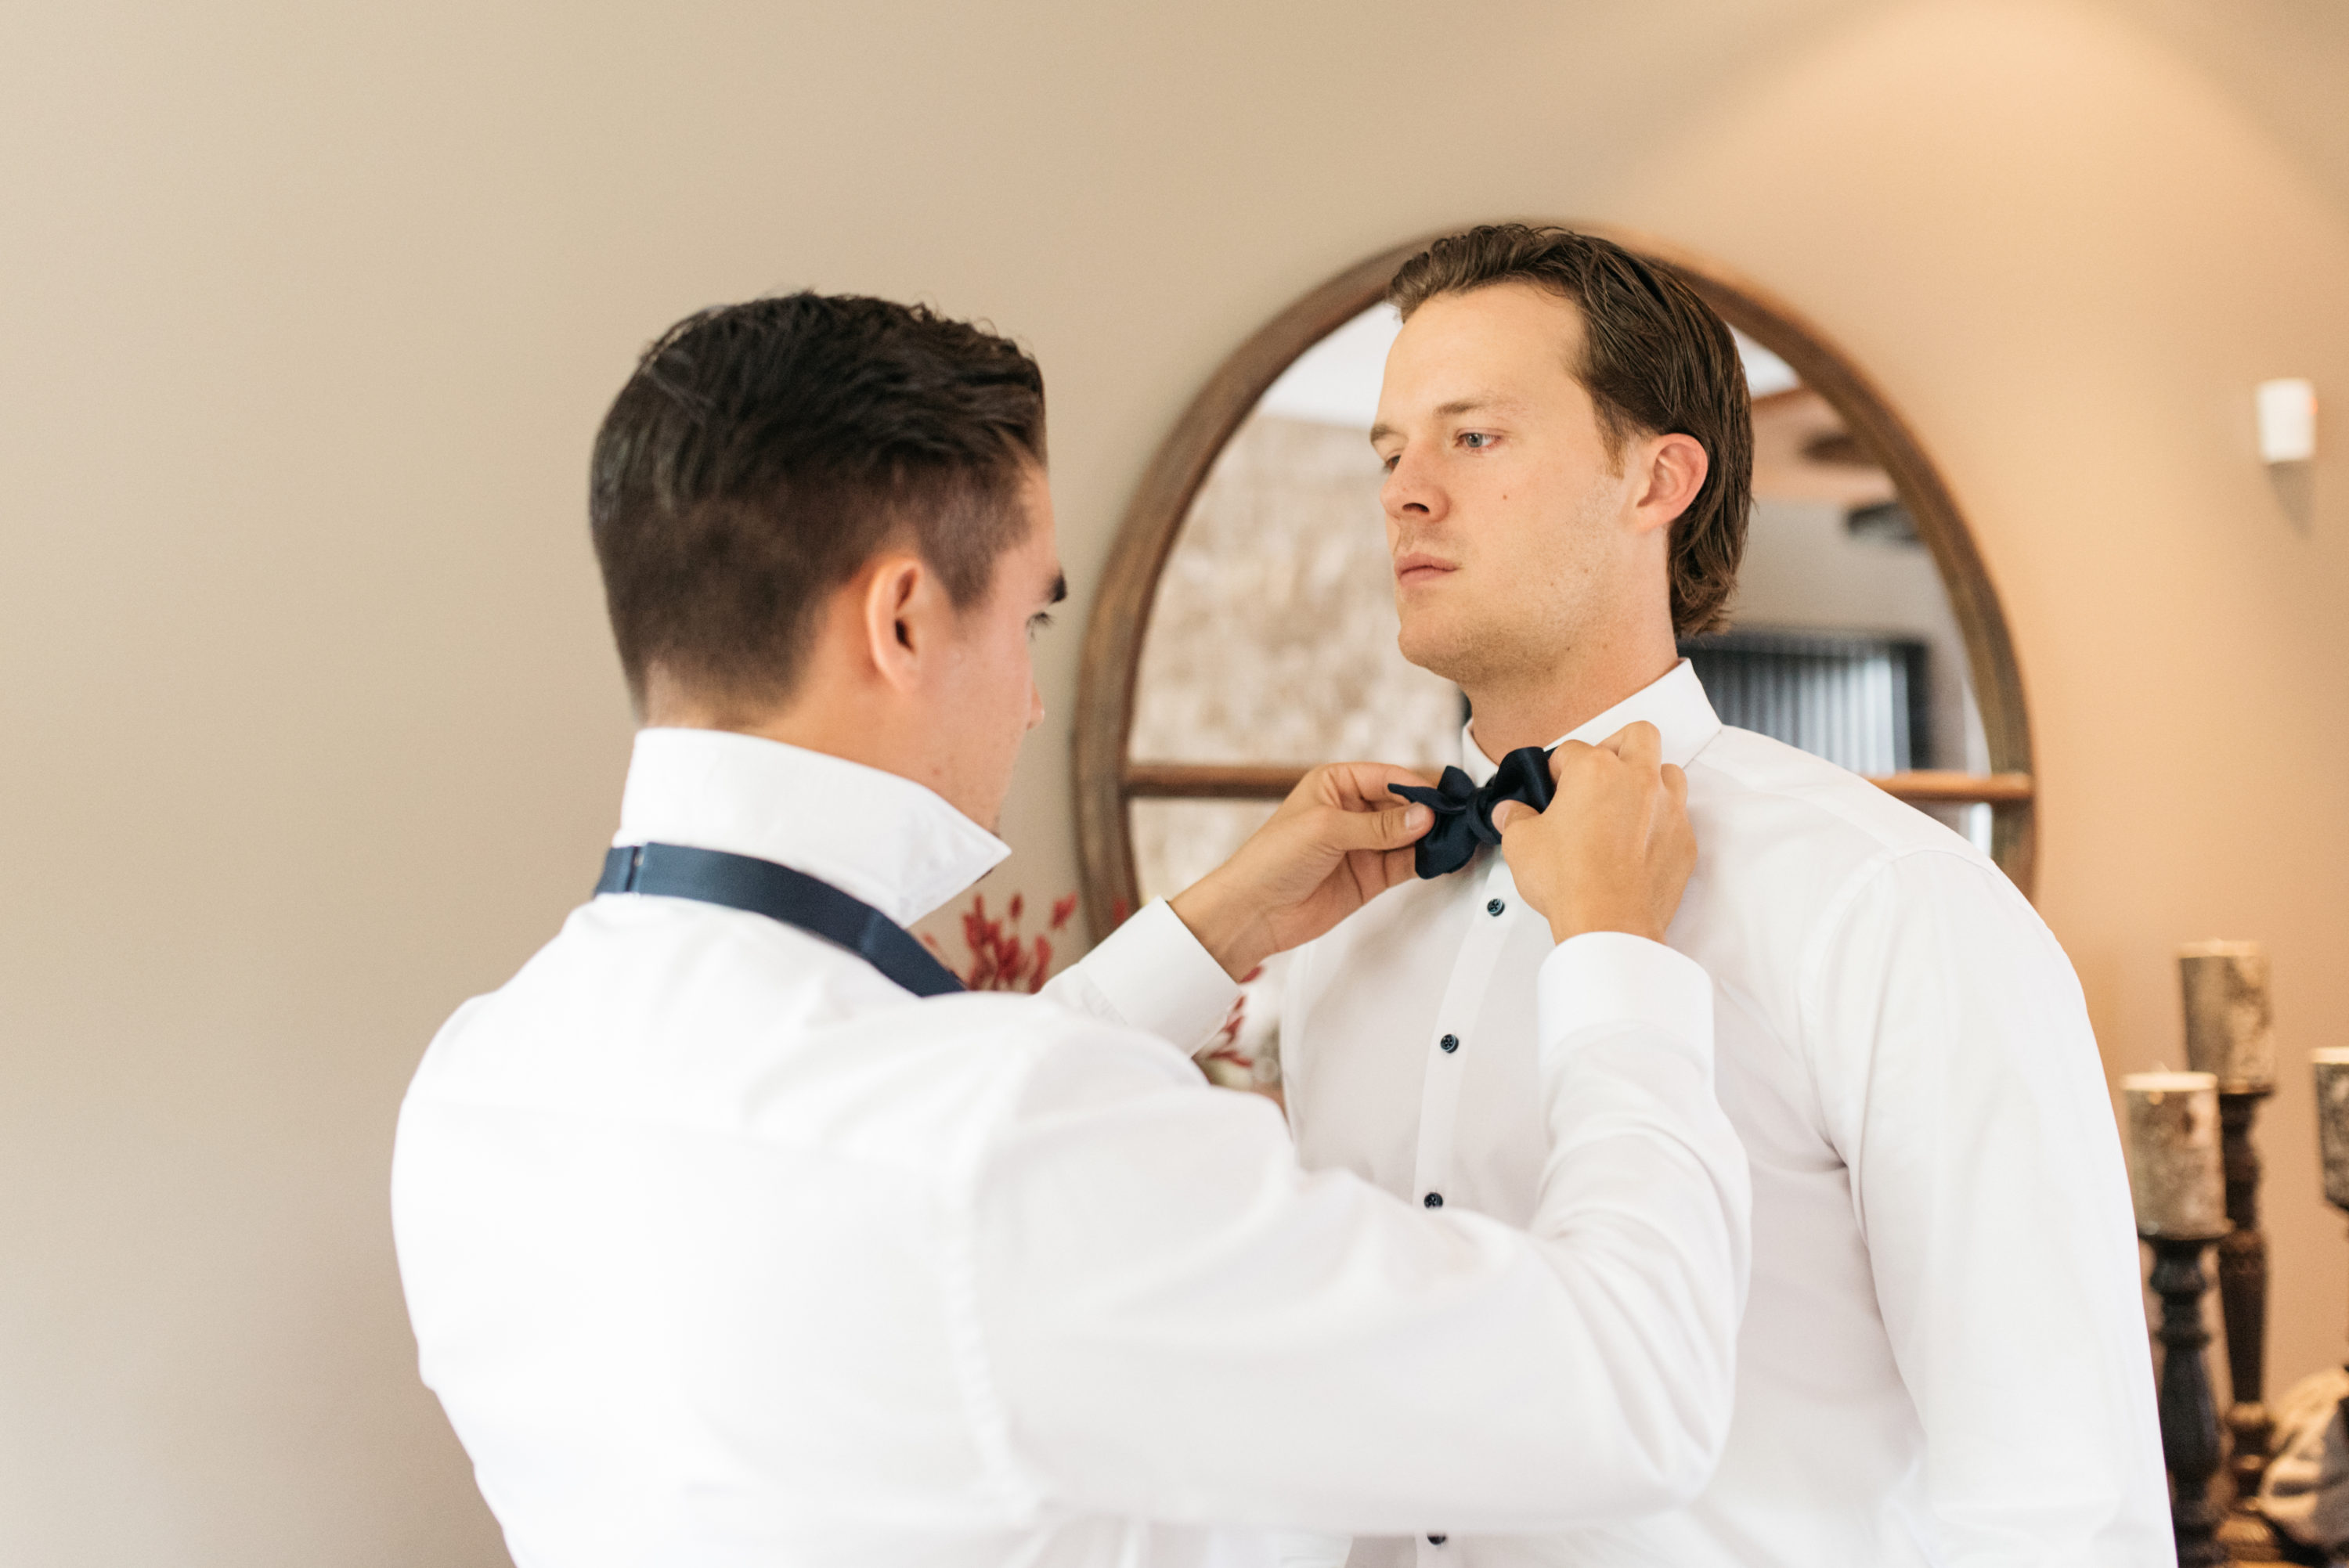 Groomsman helping groom out with his tie